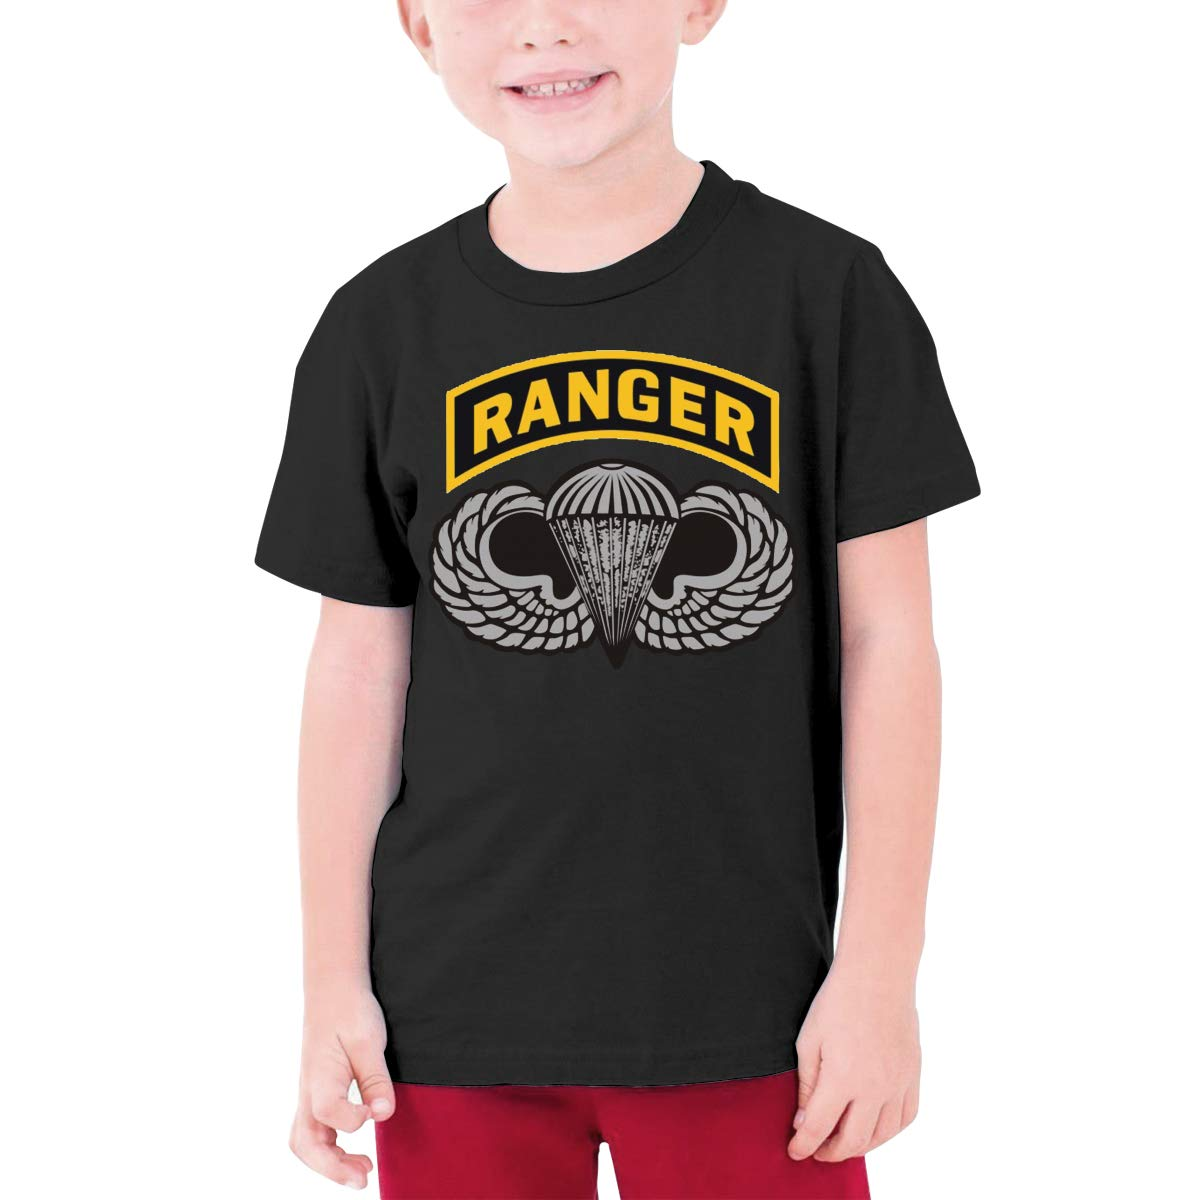 EROTEN Us Army Ranger Tab Cotton Youth T Shirts Short Sleeve for Teenager Boys Girls